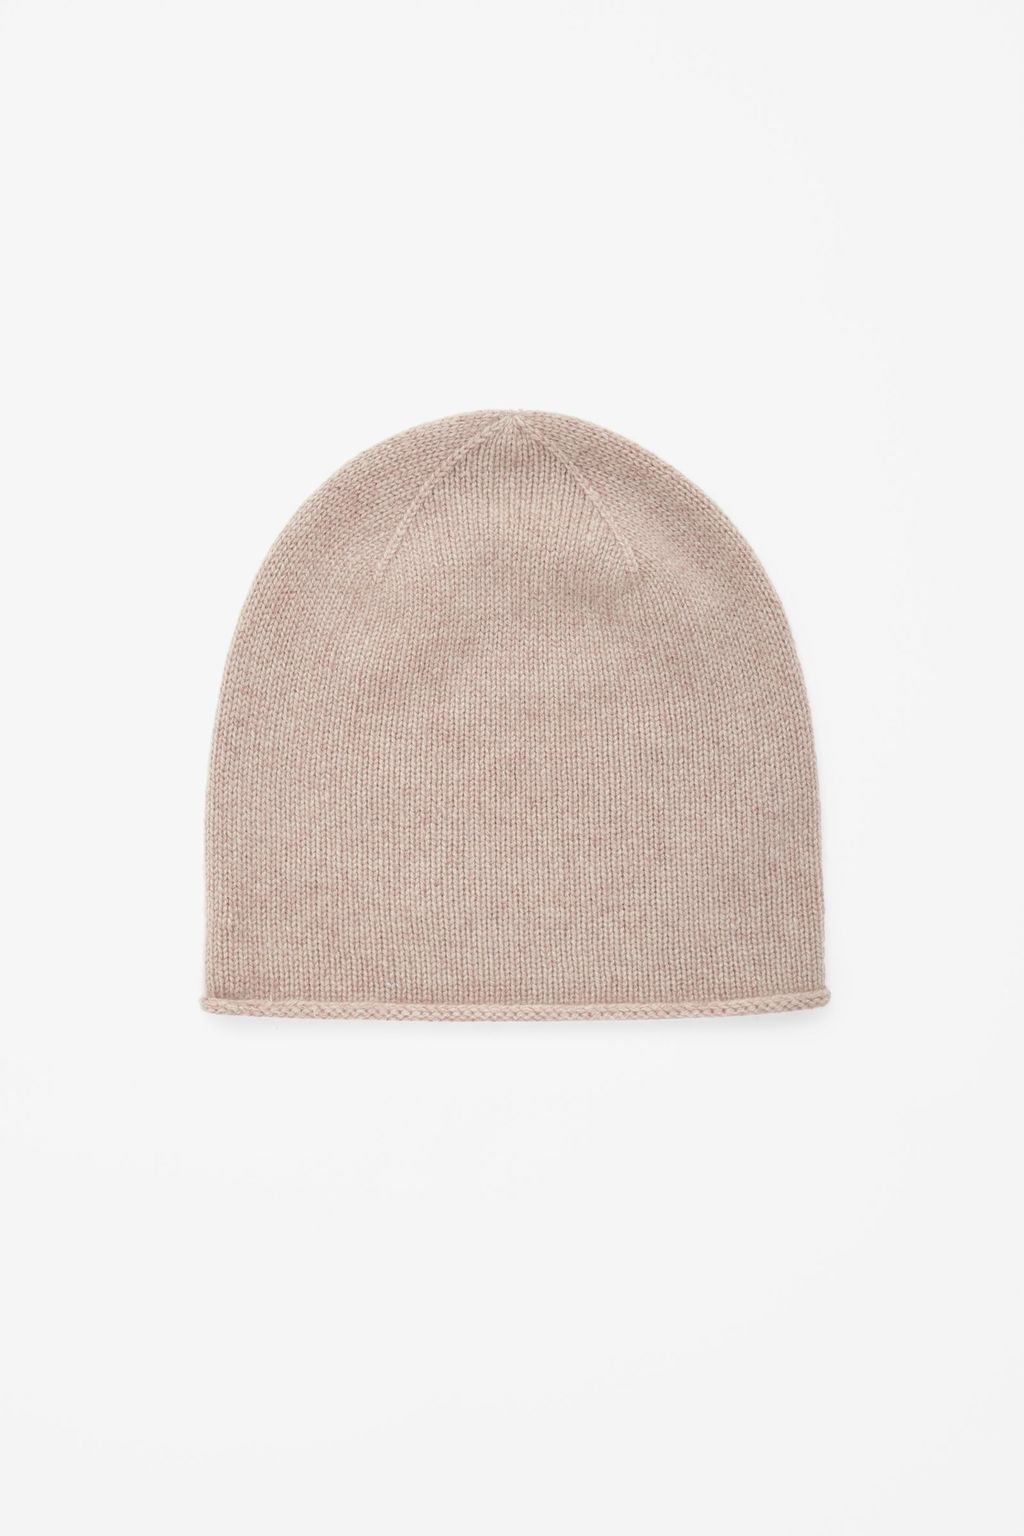 Cashmere Hat - predominant colour: stone; occasions: casual; style: beanie; size: standard; pattern: plain; material: cashmere; season: a/w 2015; wardrobe: investment